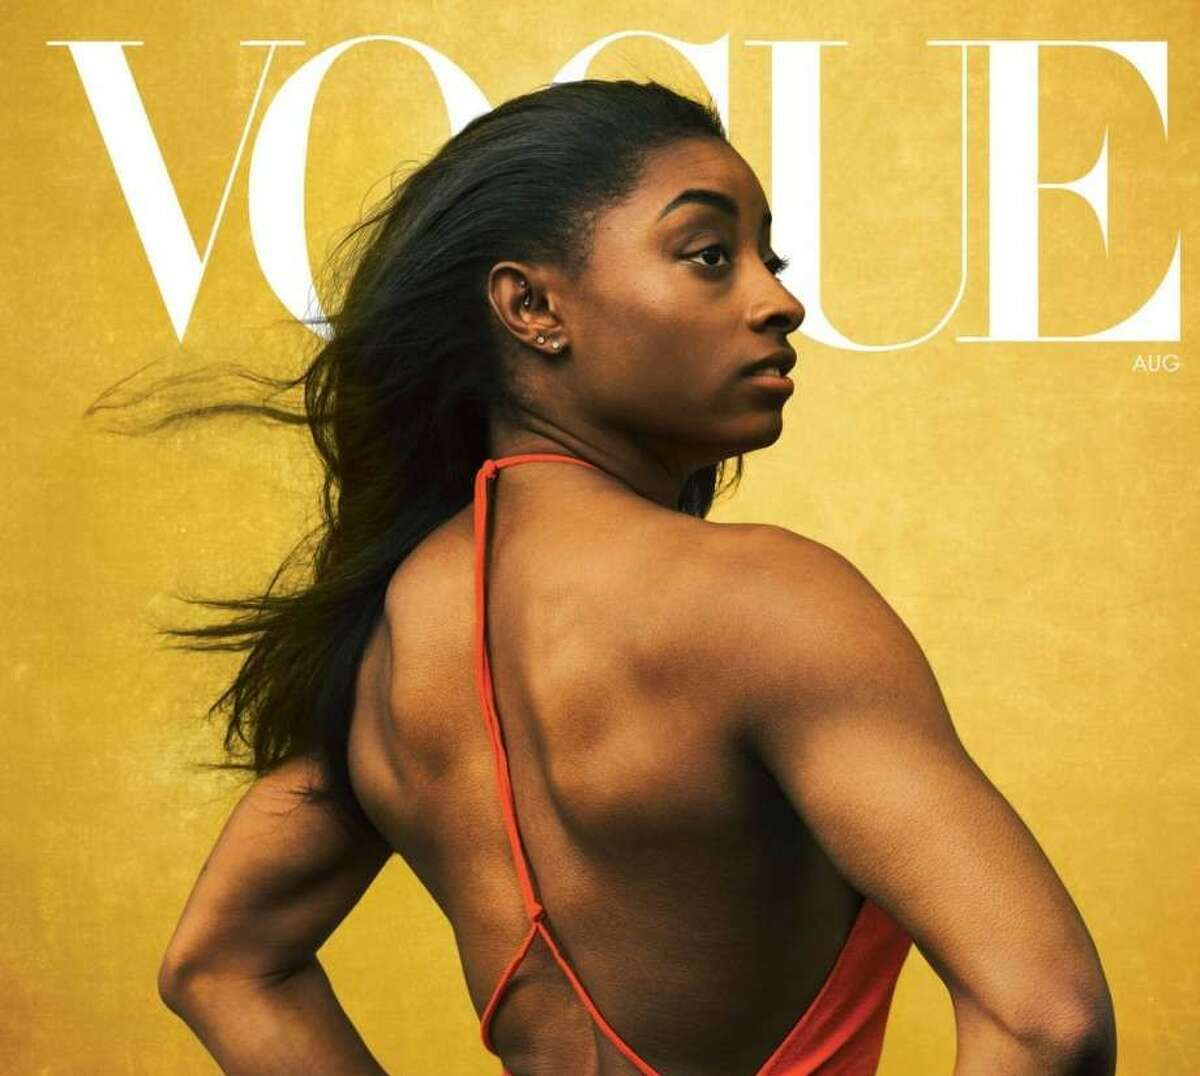 Simone Biles on the cover of the August 2020 issue of Vogue magazine